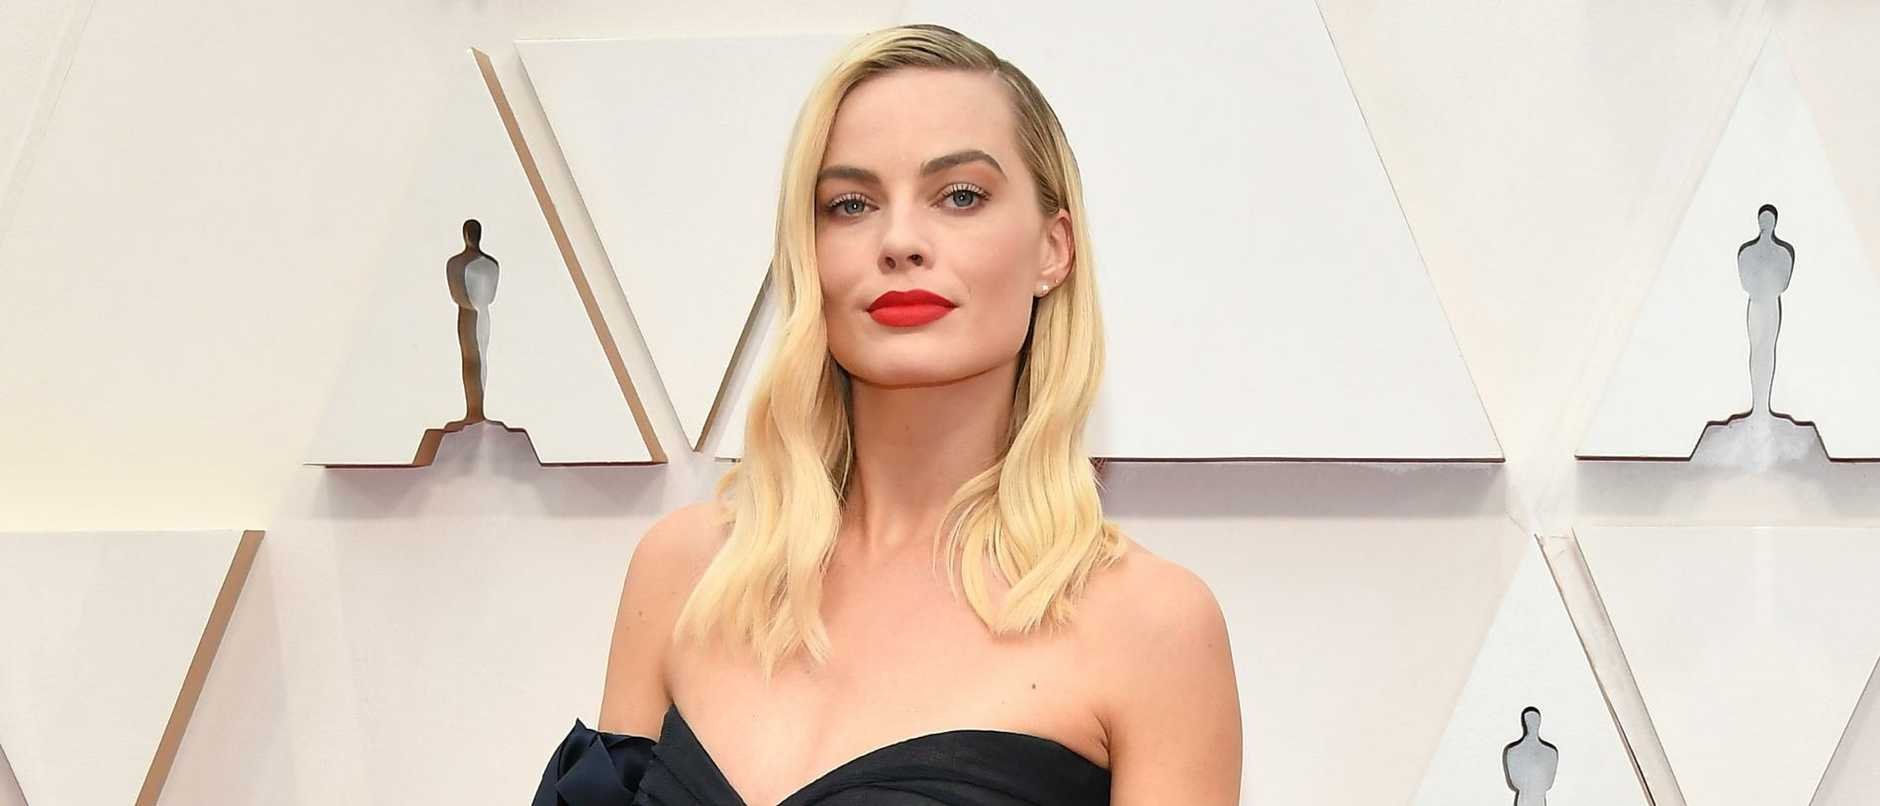 Aussie movie star Margot Robbie is lending her voice to campaign #WeThriveInside by sharing her strategies for coping during the COVID-19 pandemic.